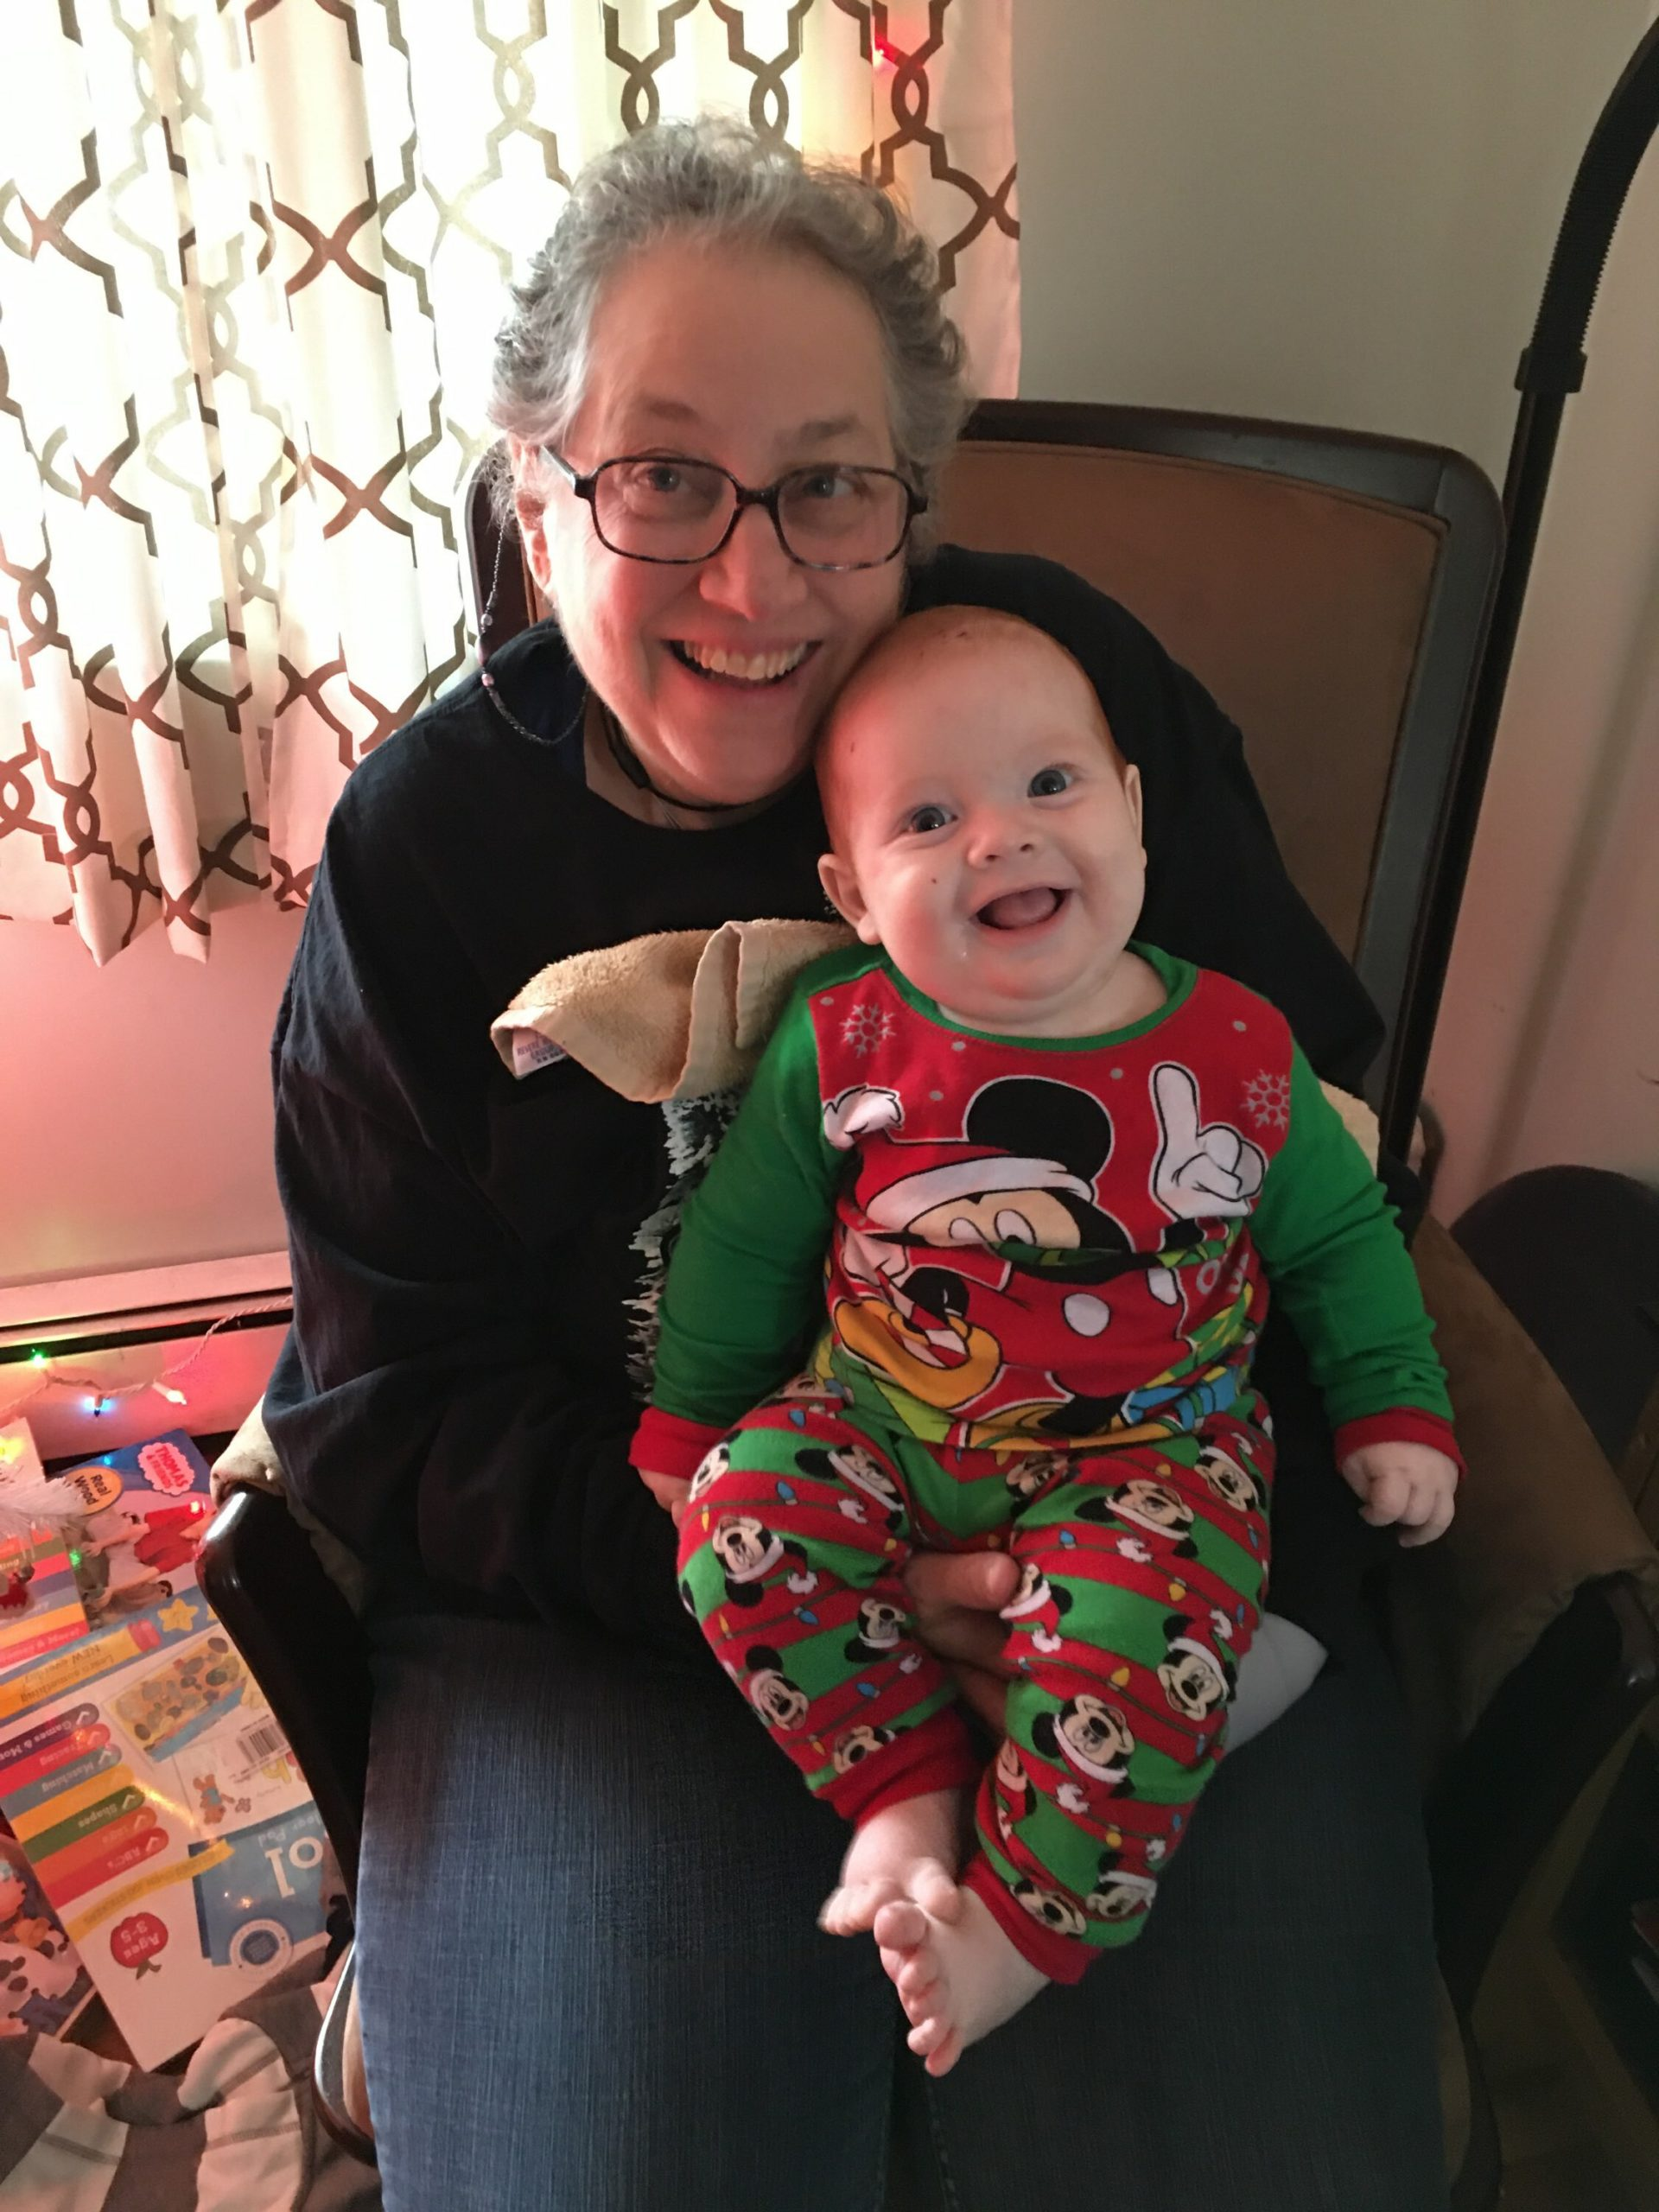 East Quogue local Toni Petersen, who found a bone marrow match in 2014, is now searching for a perfect match for her sick six-month-old grandson, Jase.